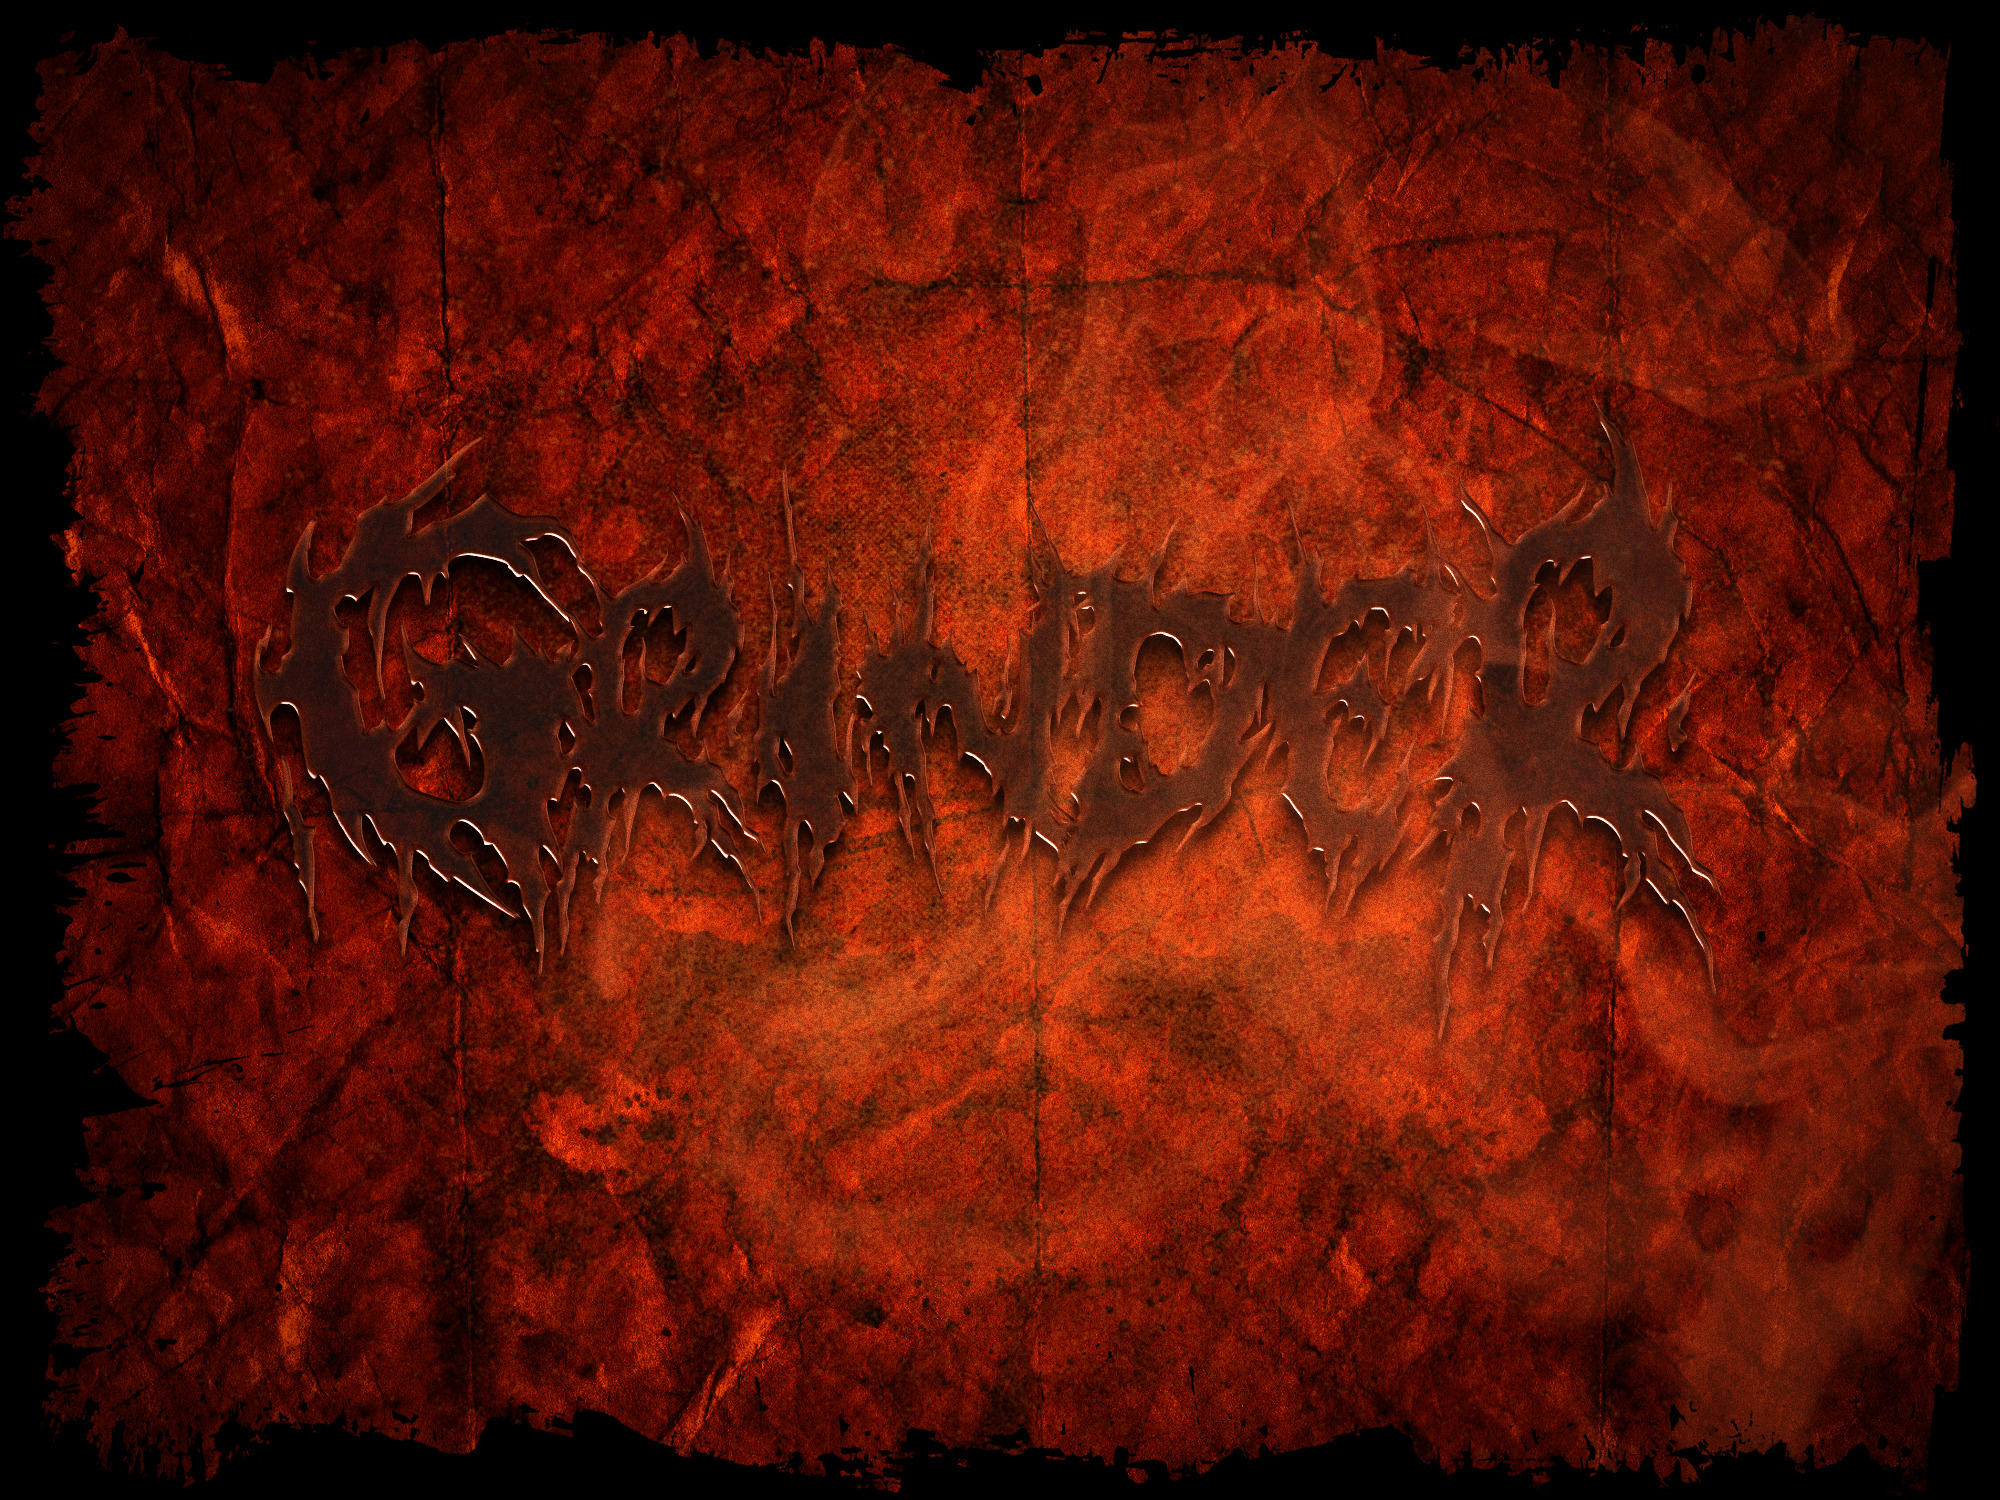 brutal death grind core band logo text effects styles vol